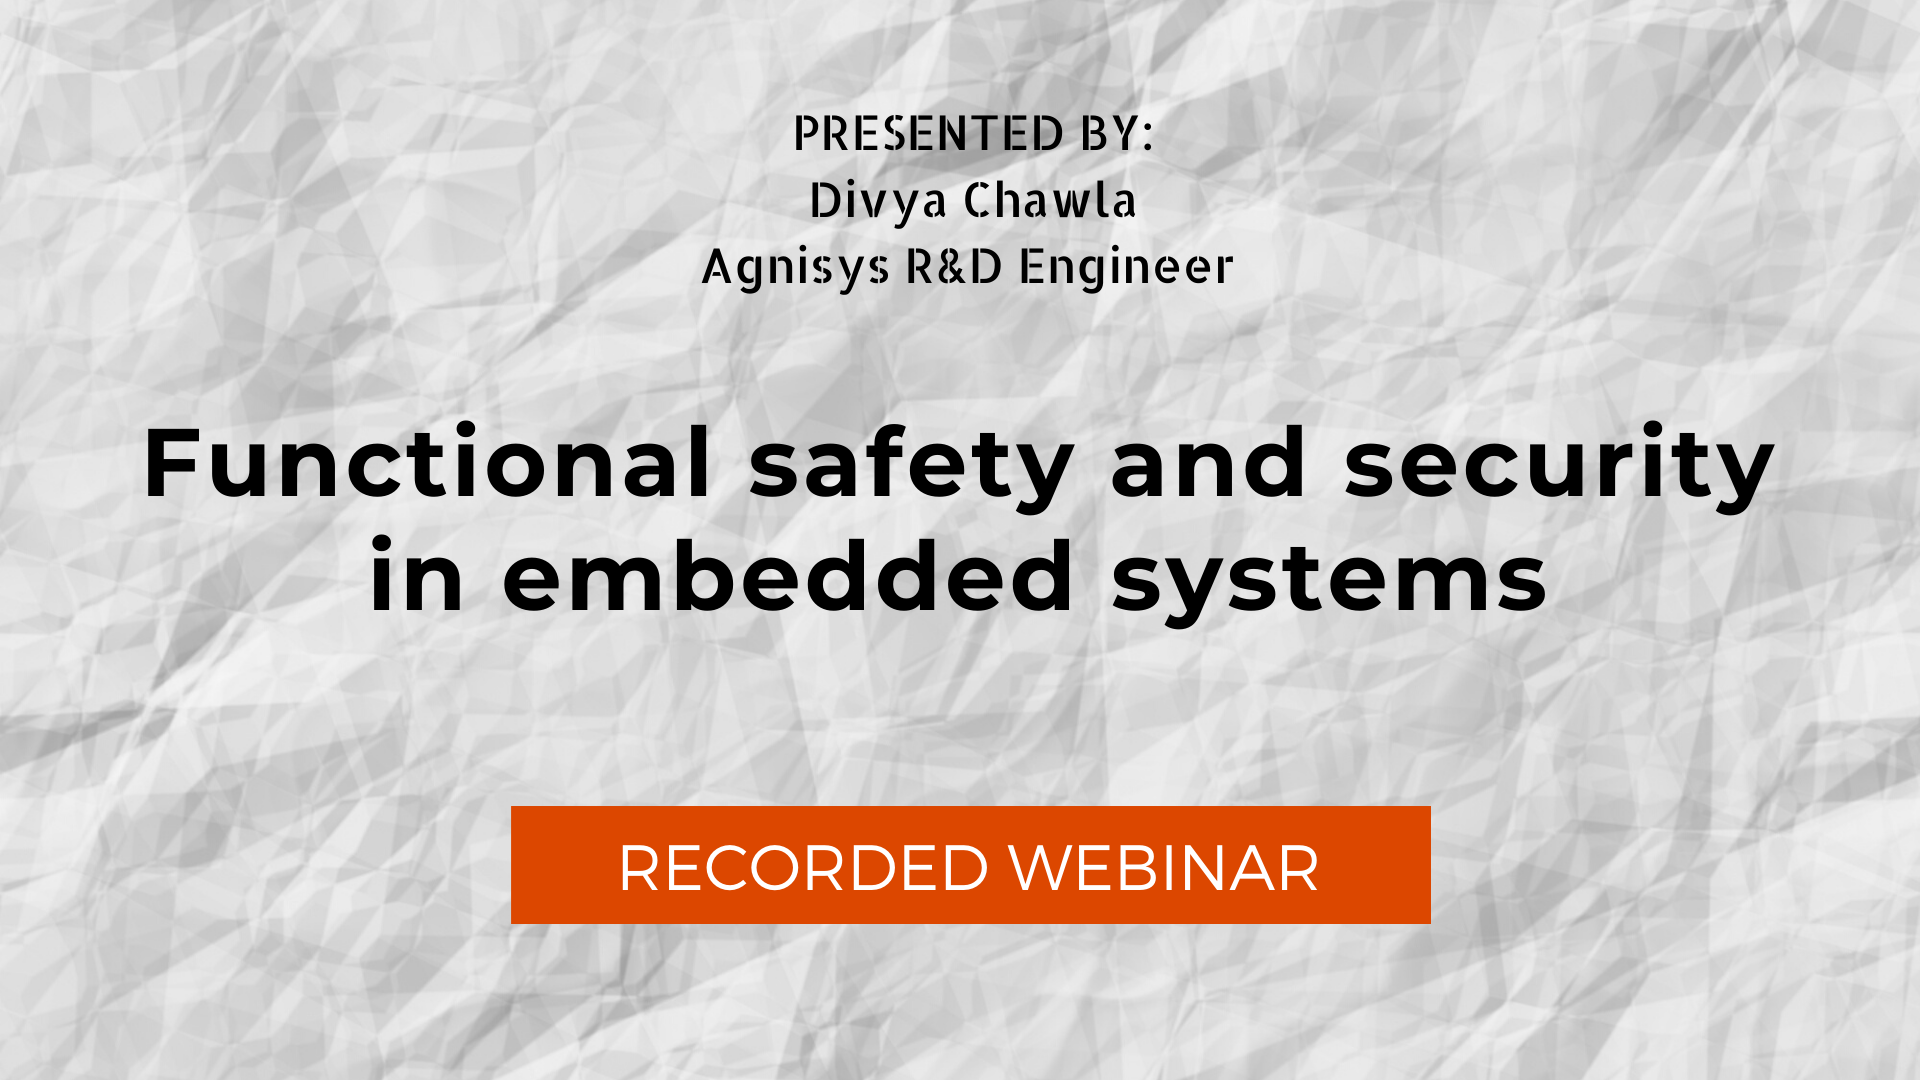 Functional safety and security in embedded systems